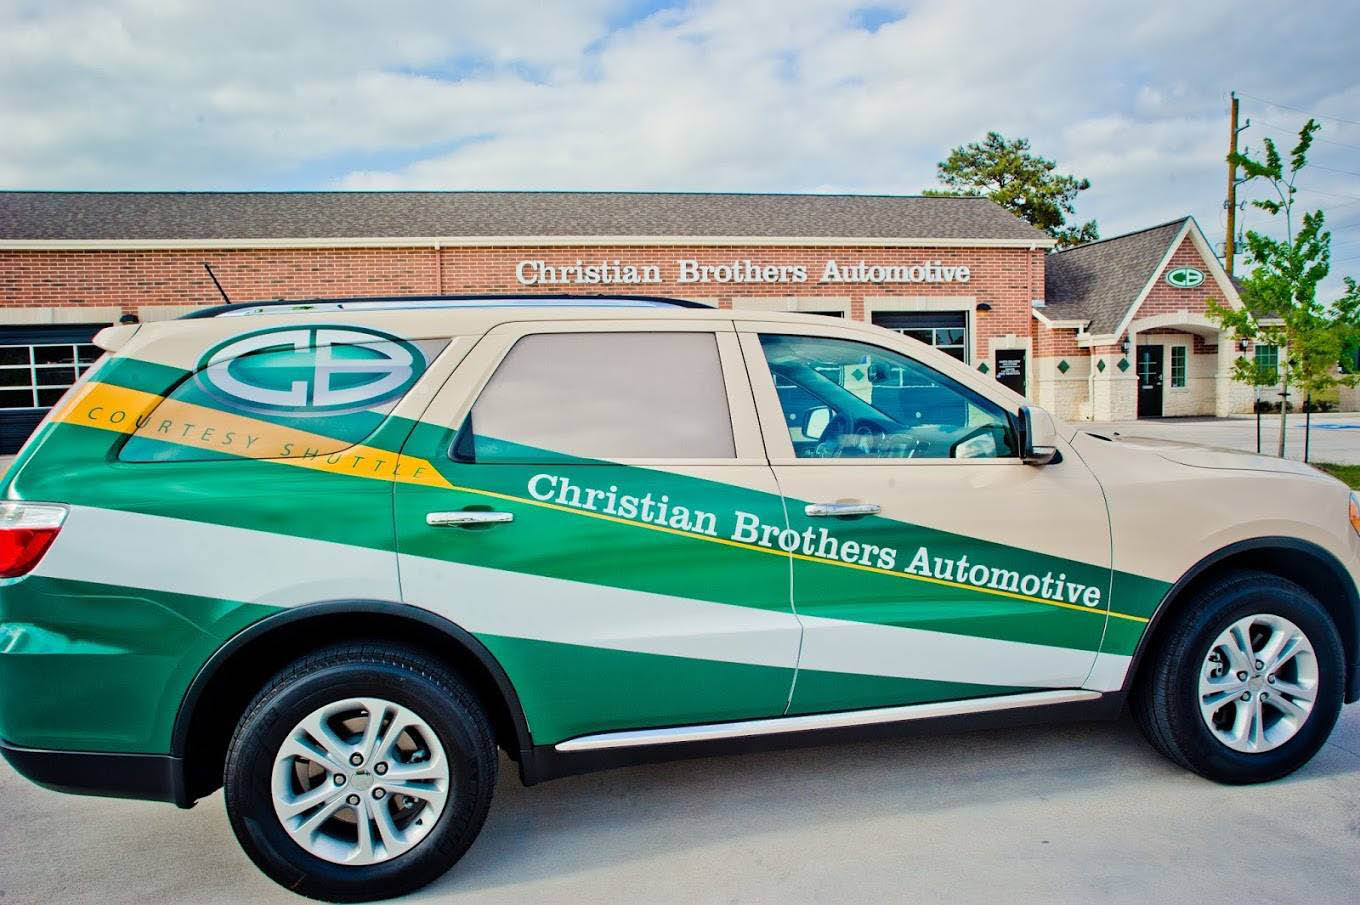 Christian Brothers Automotive also provides free shuttle rides while your care is repaired